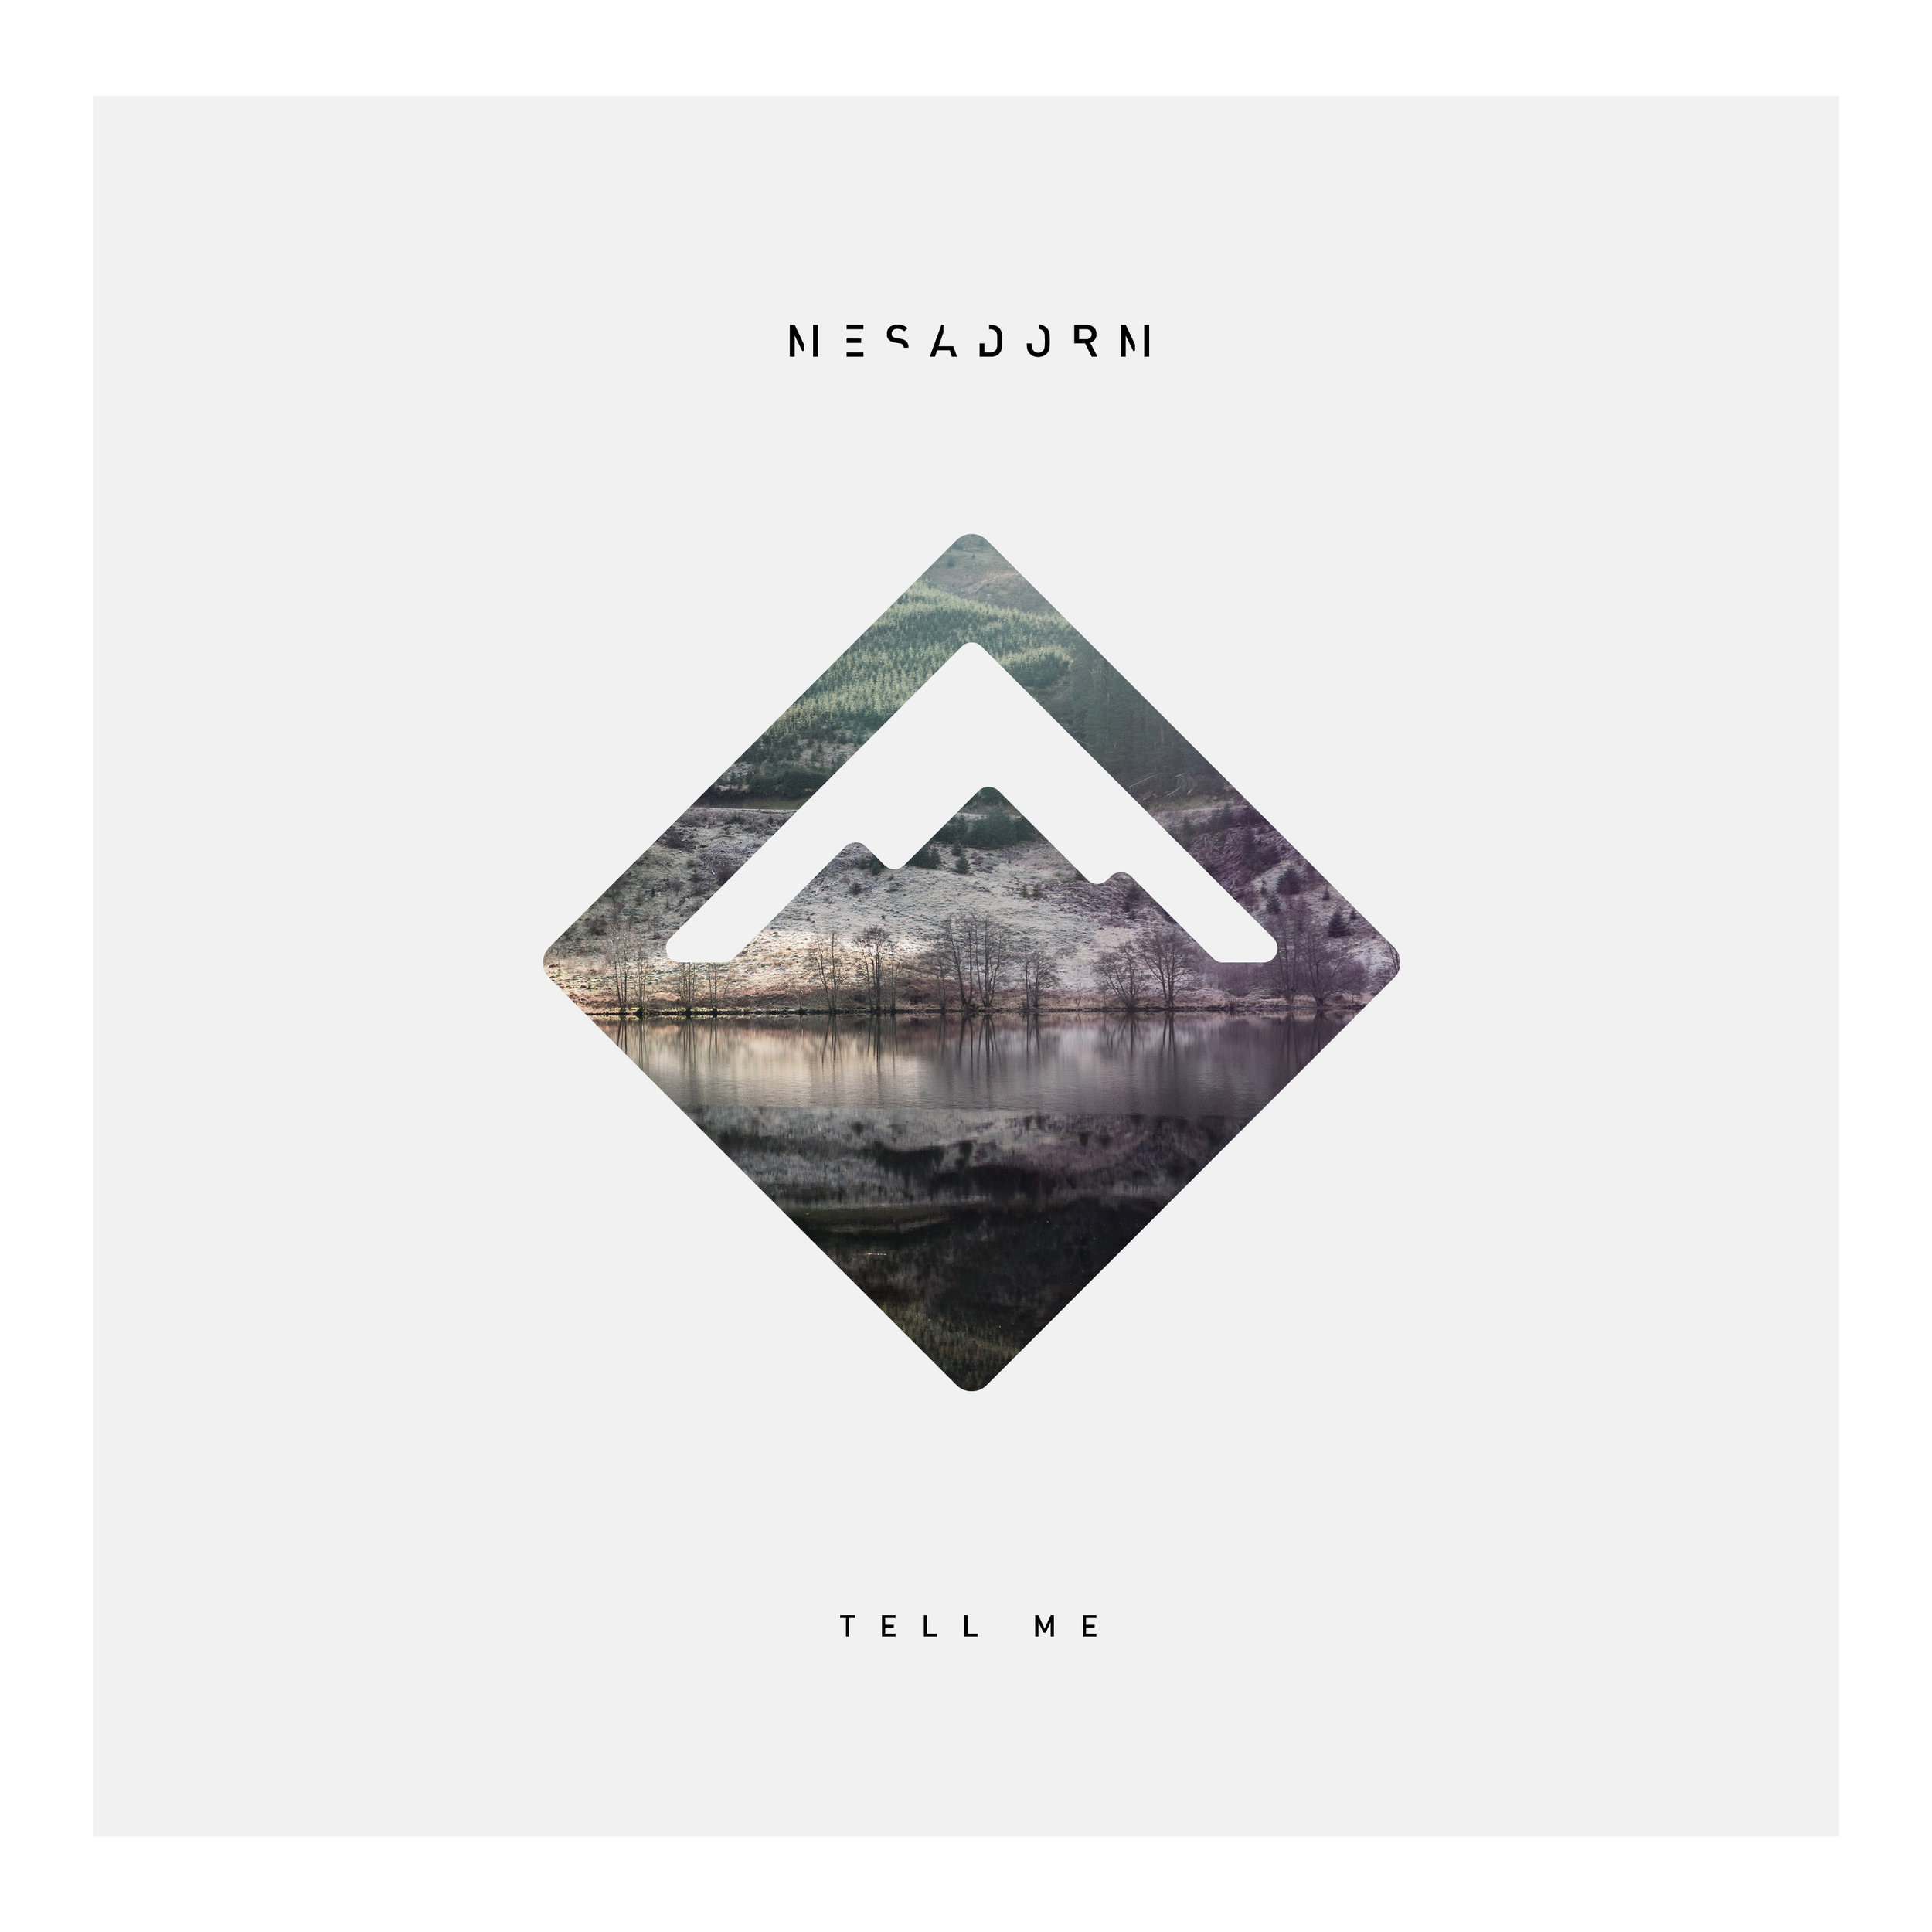 Mesadorm_Tell_Me_Single_Cover-10.jpg